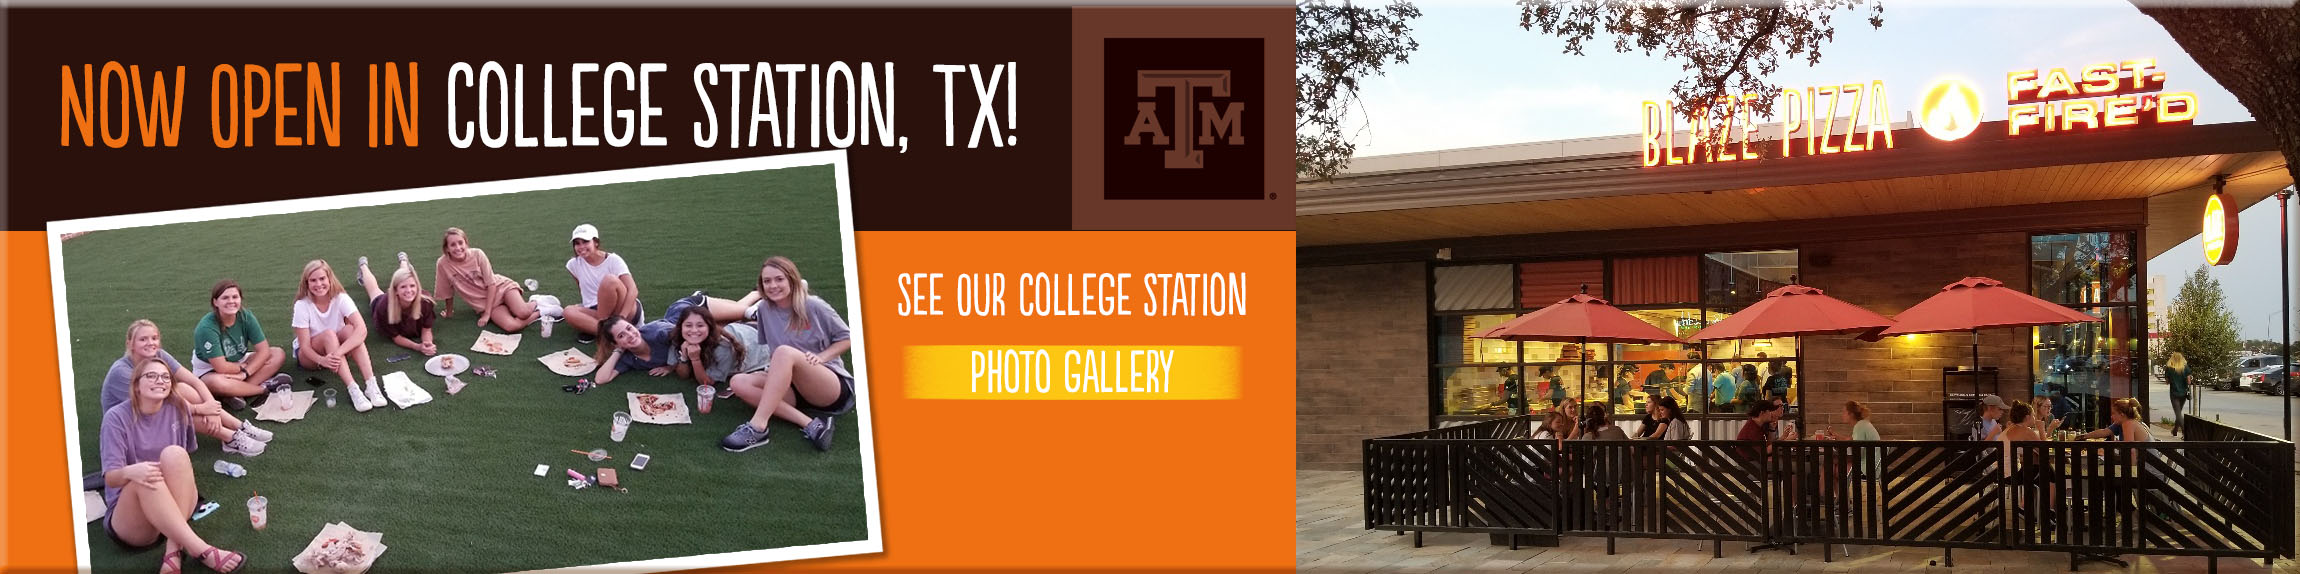 Now Open in College Station, TX